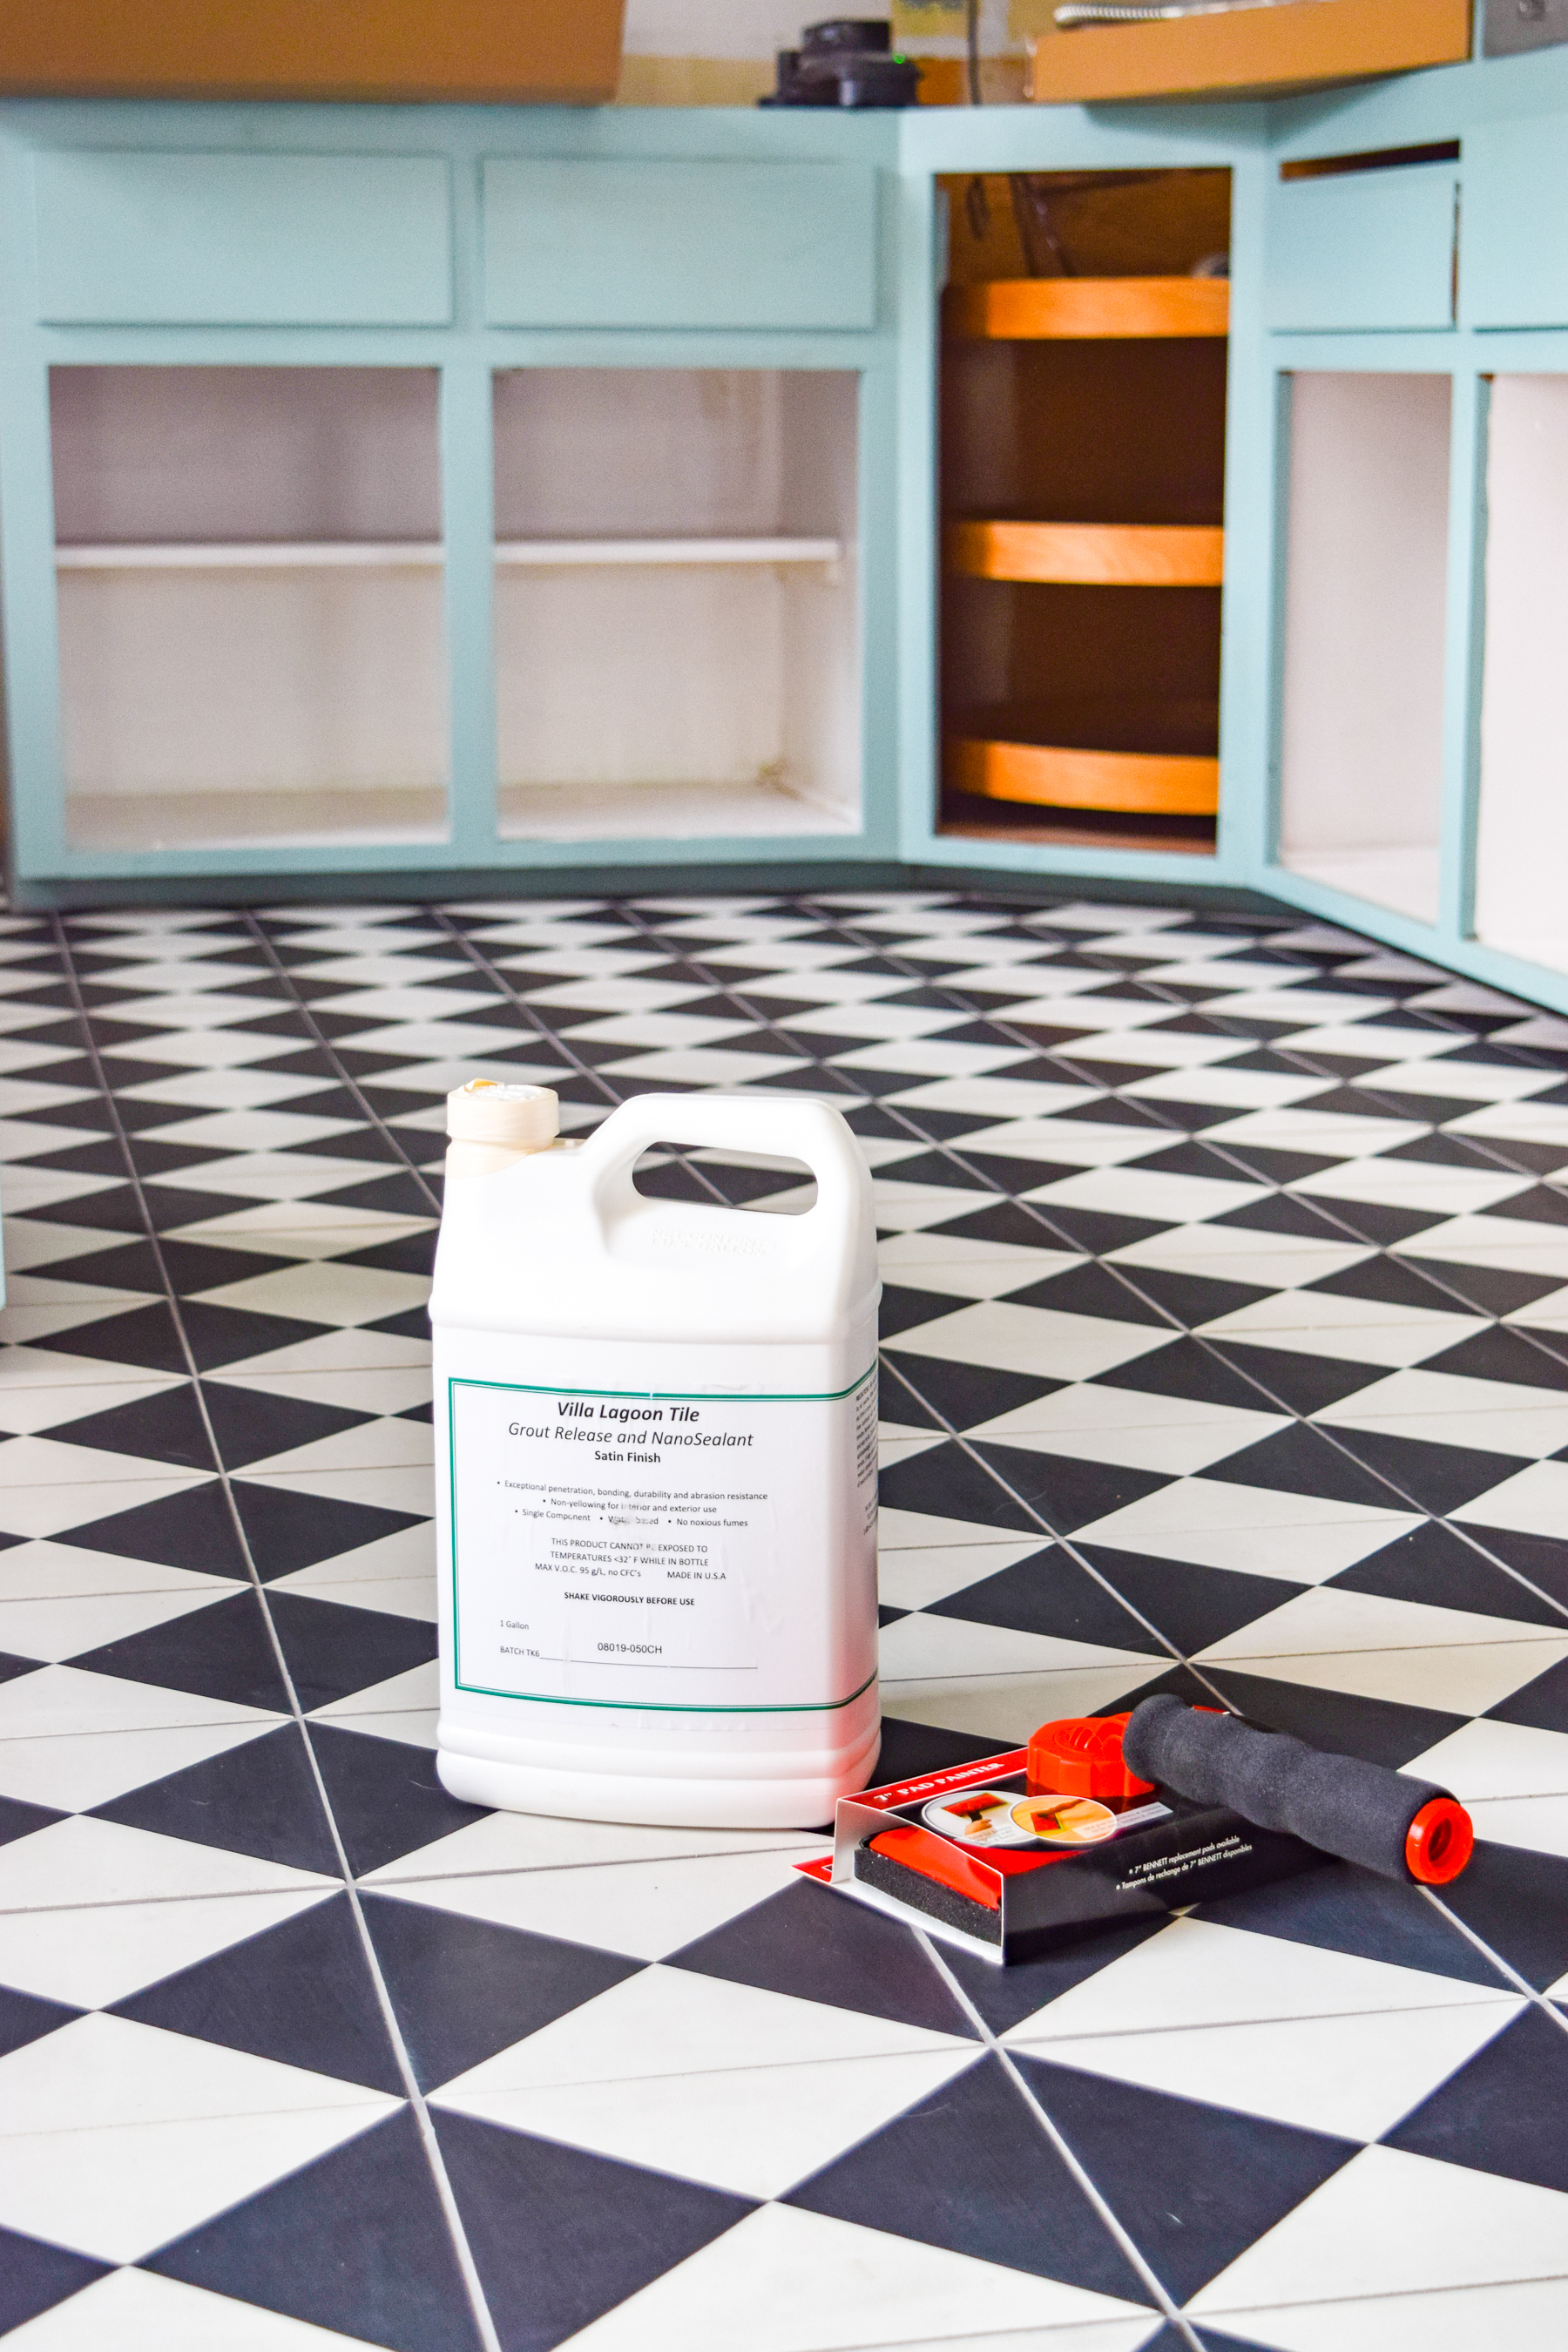 Choosing a retro kitchen floor tile is easy when you go with a cement tile! Villa Lagoon Tile has got an amazing selection, and they're so durable.